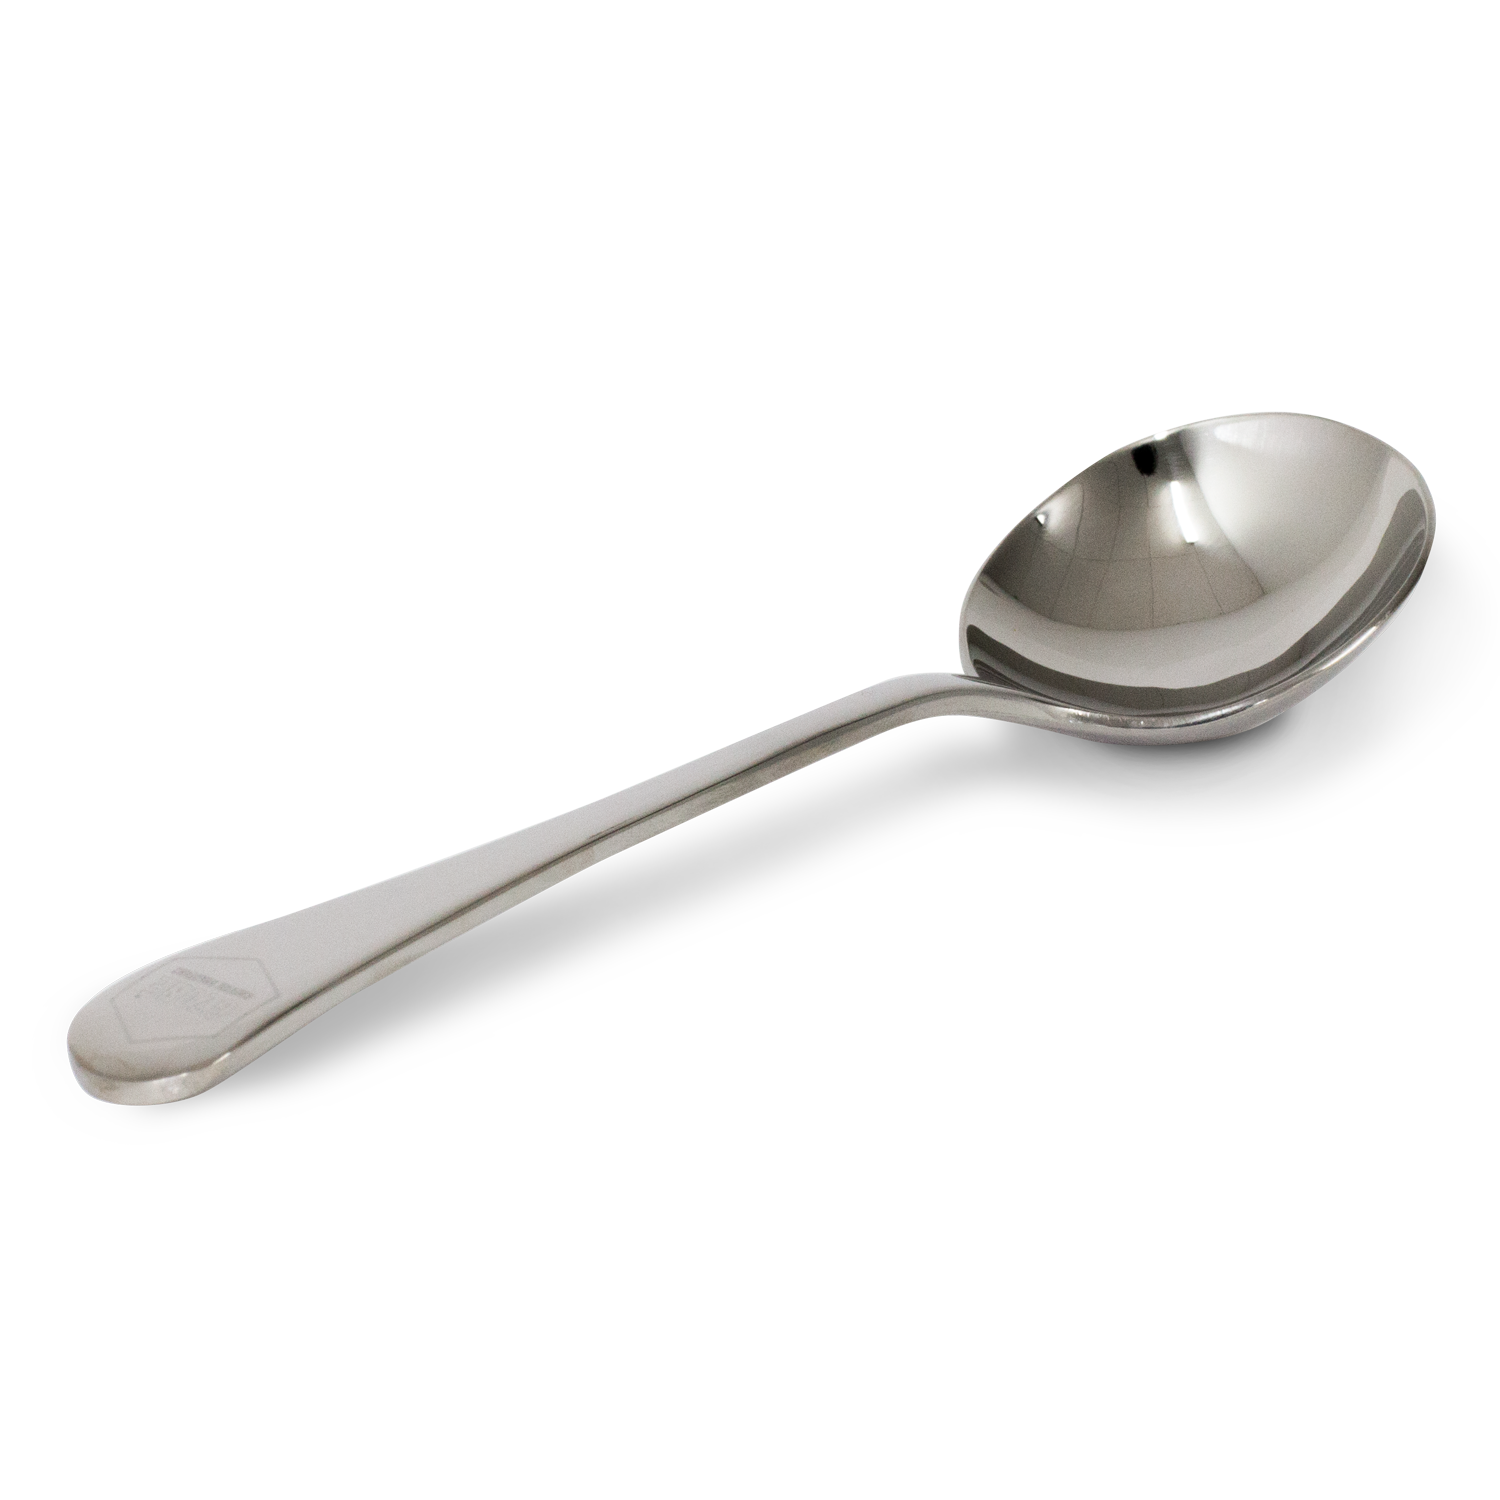 Spoon png. Images transparent free download